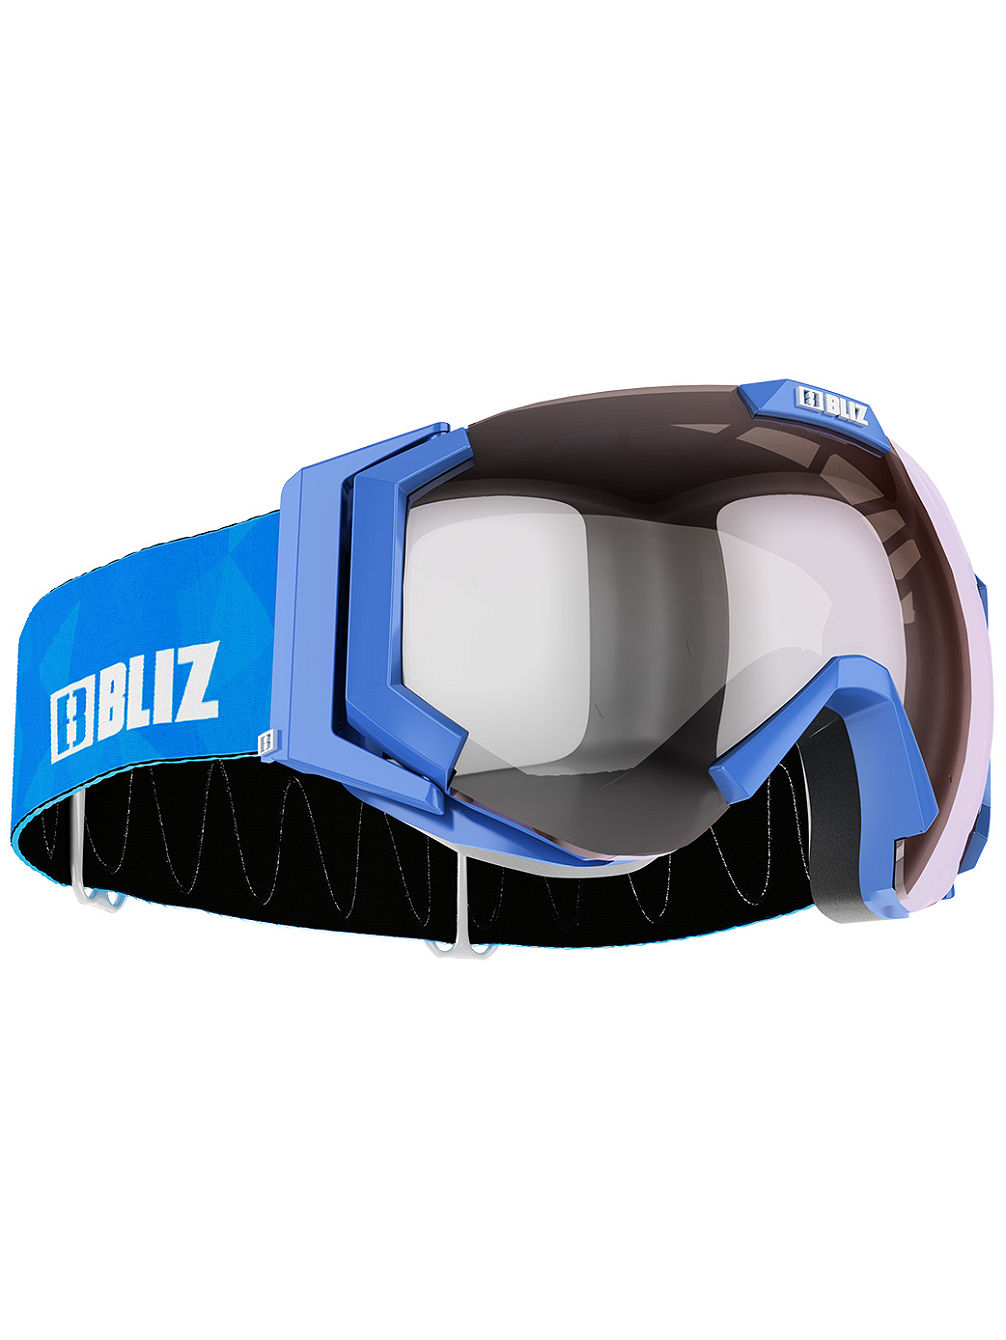 bliz-protective-sports-gear-carver-junior-blue-youth